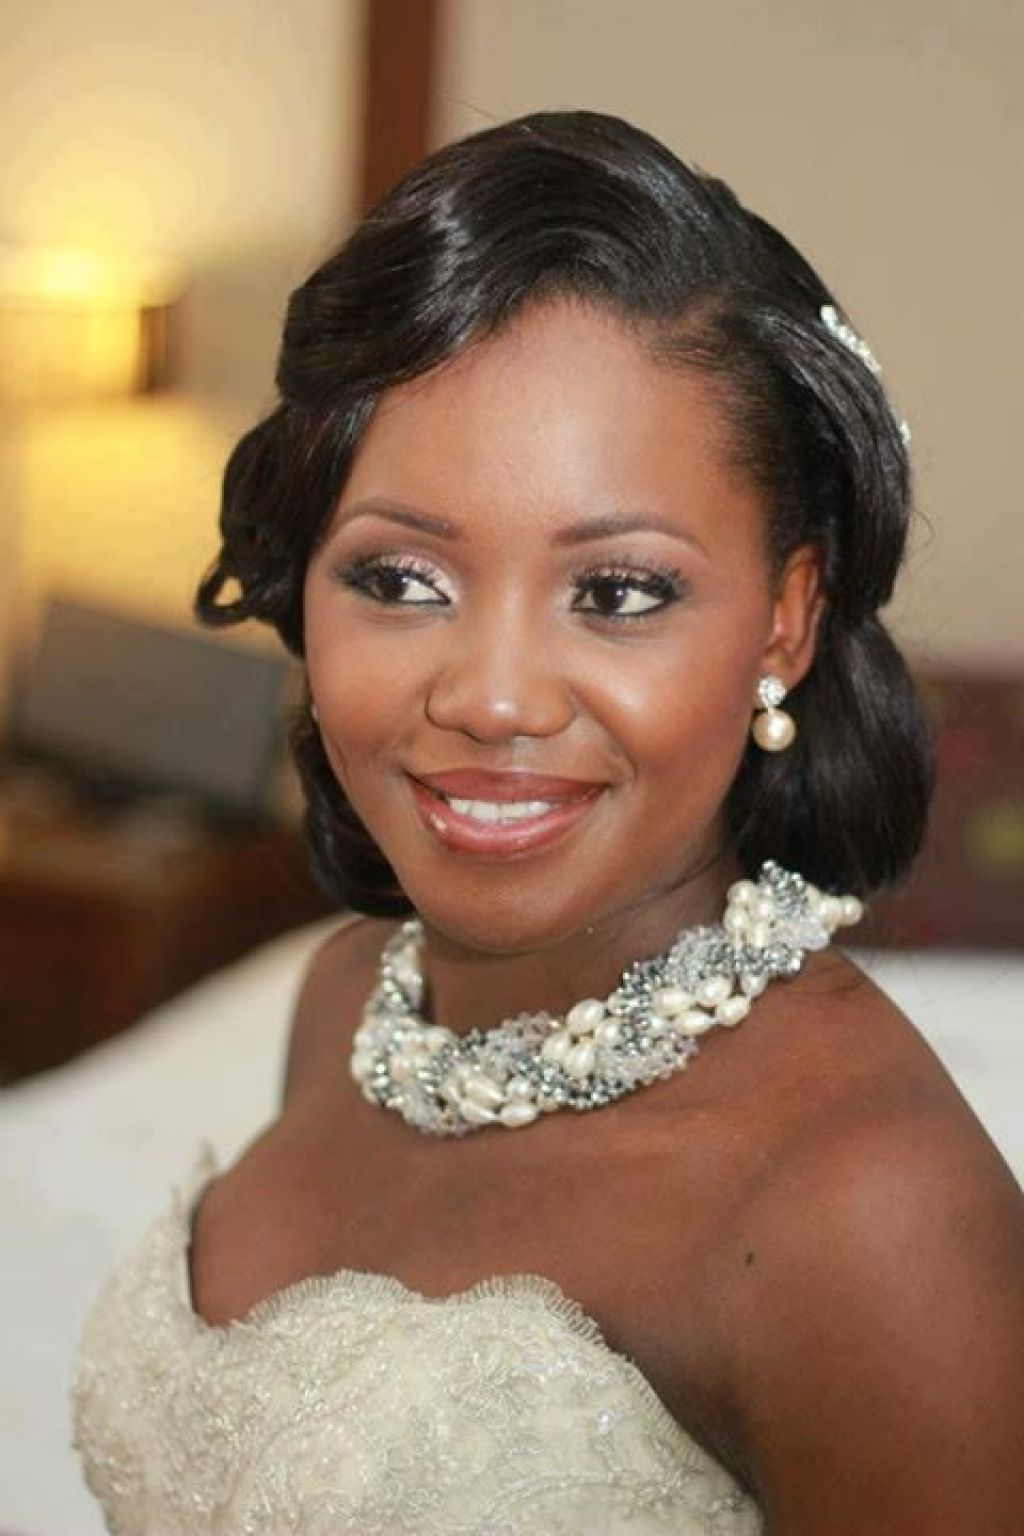 Best Wedding Wavy Bob Hairstyle for Black Women